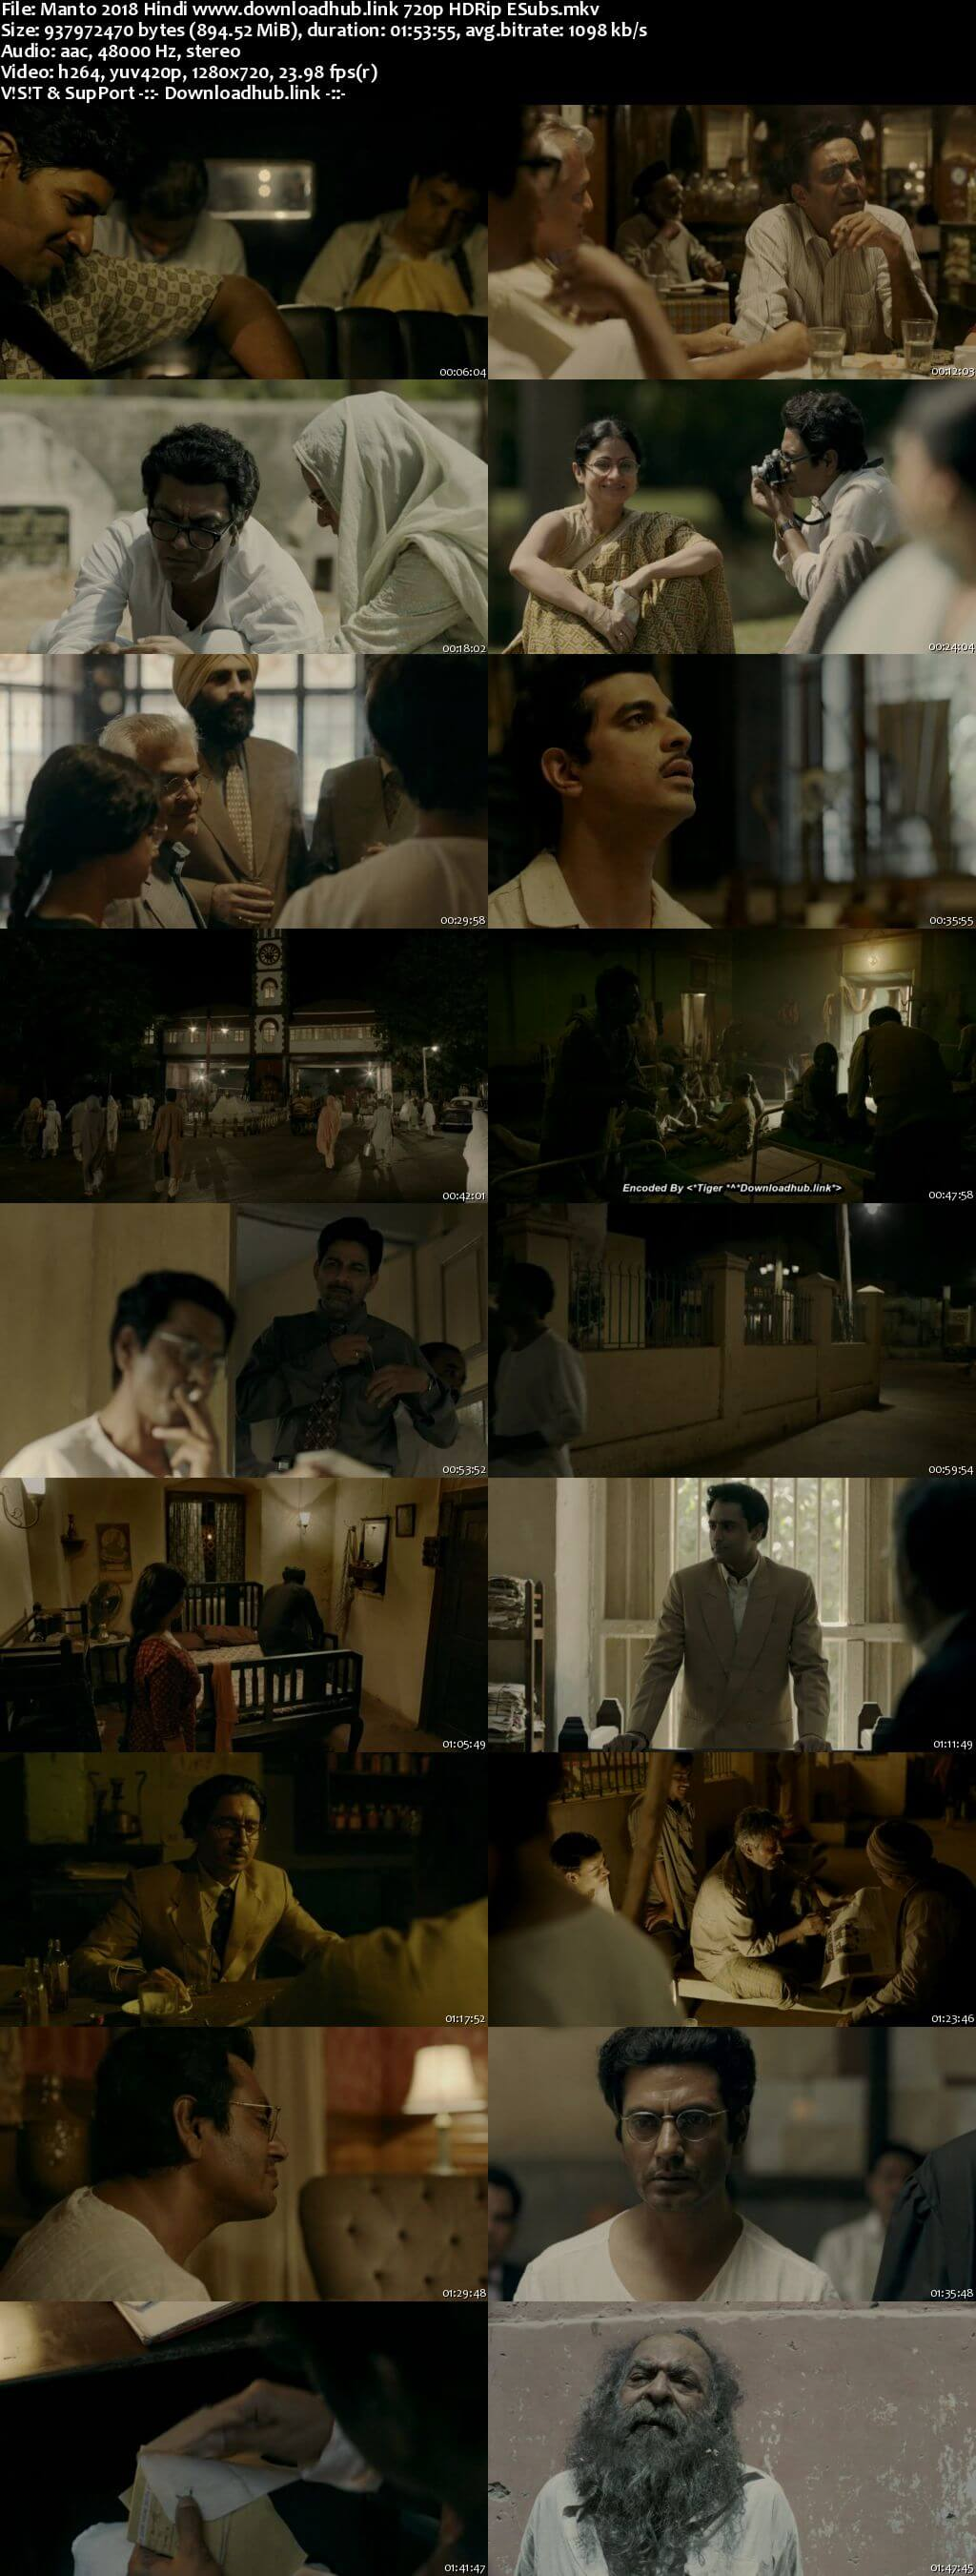 Manto 2018 Hindi 720p HDRip ESubs